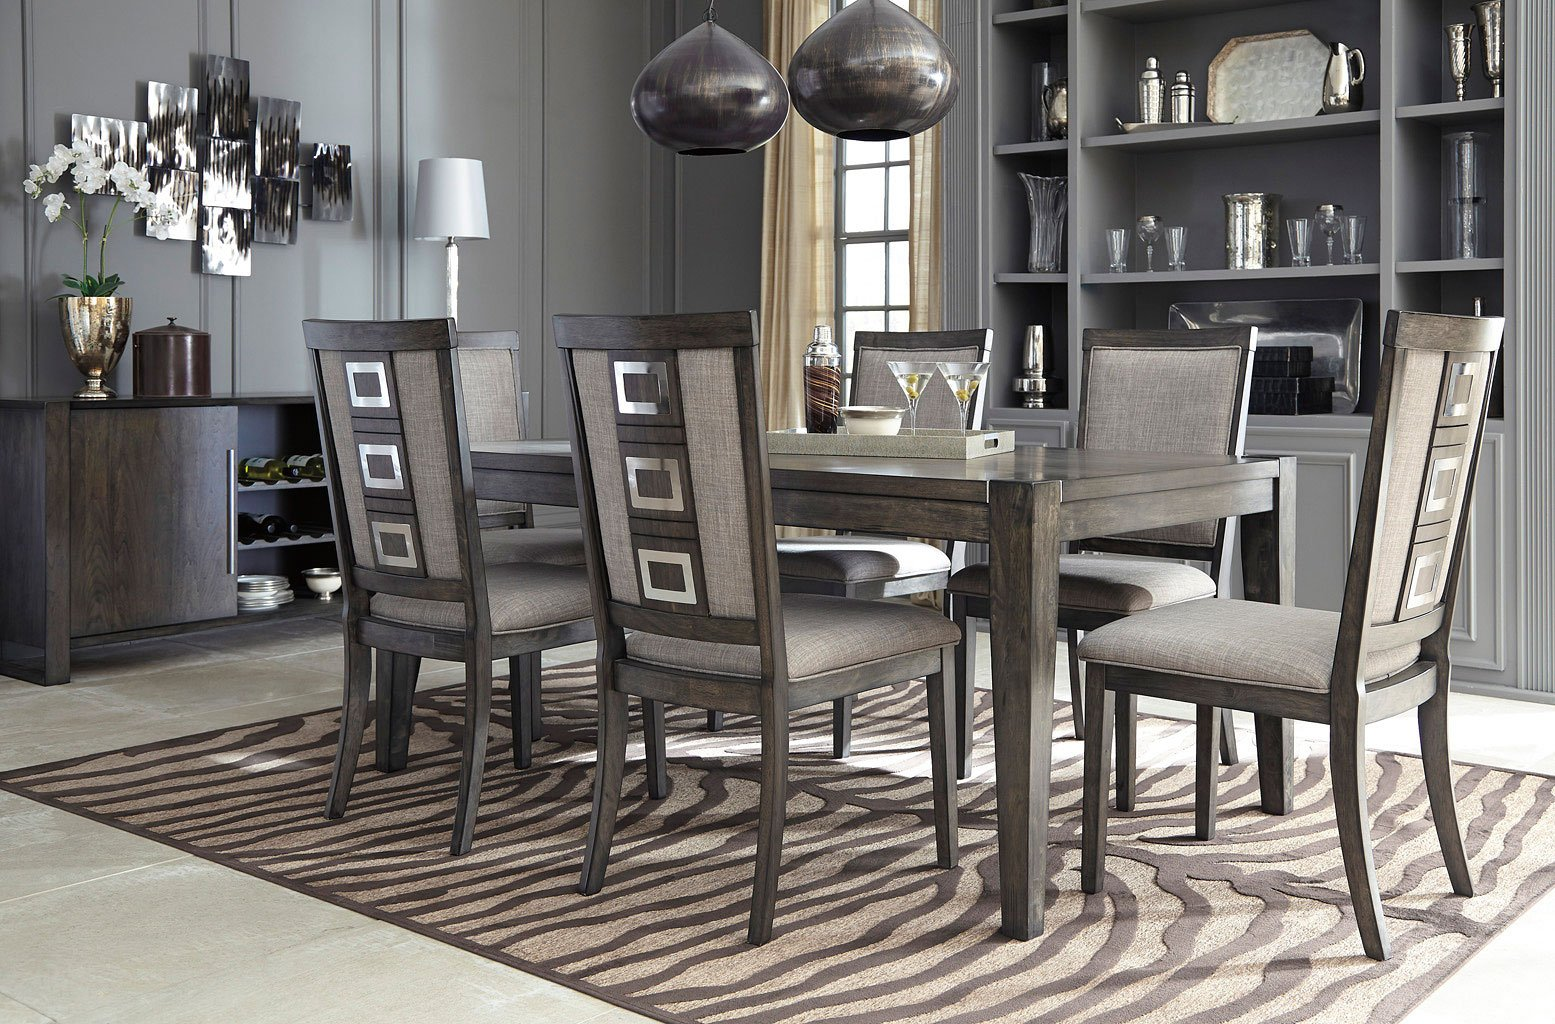 Chadoni Dining Room Set Formal Dining Sets Dining Room And Kitchen Furniture